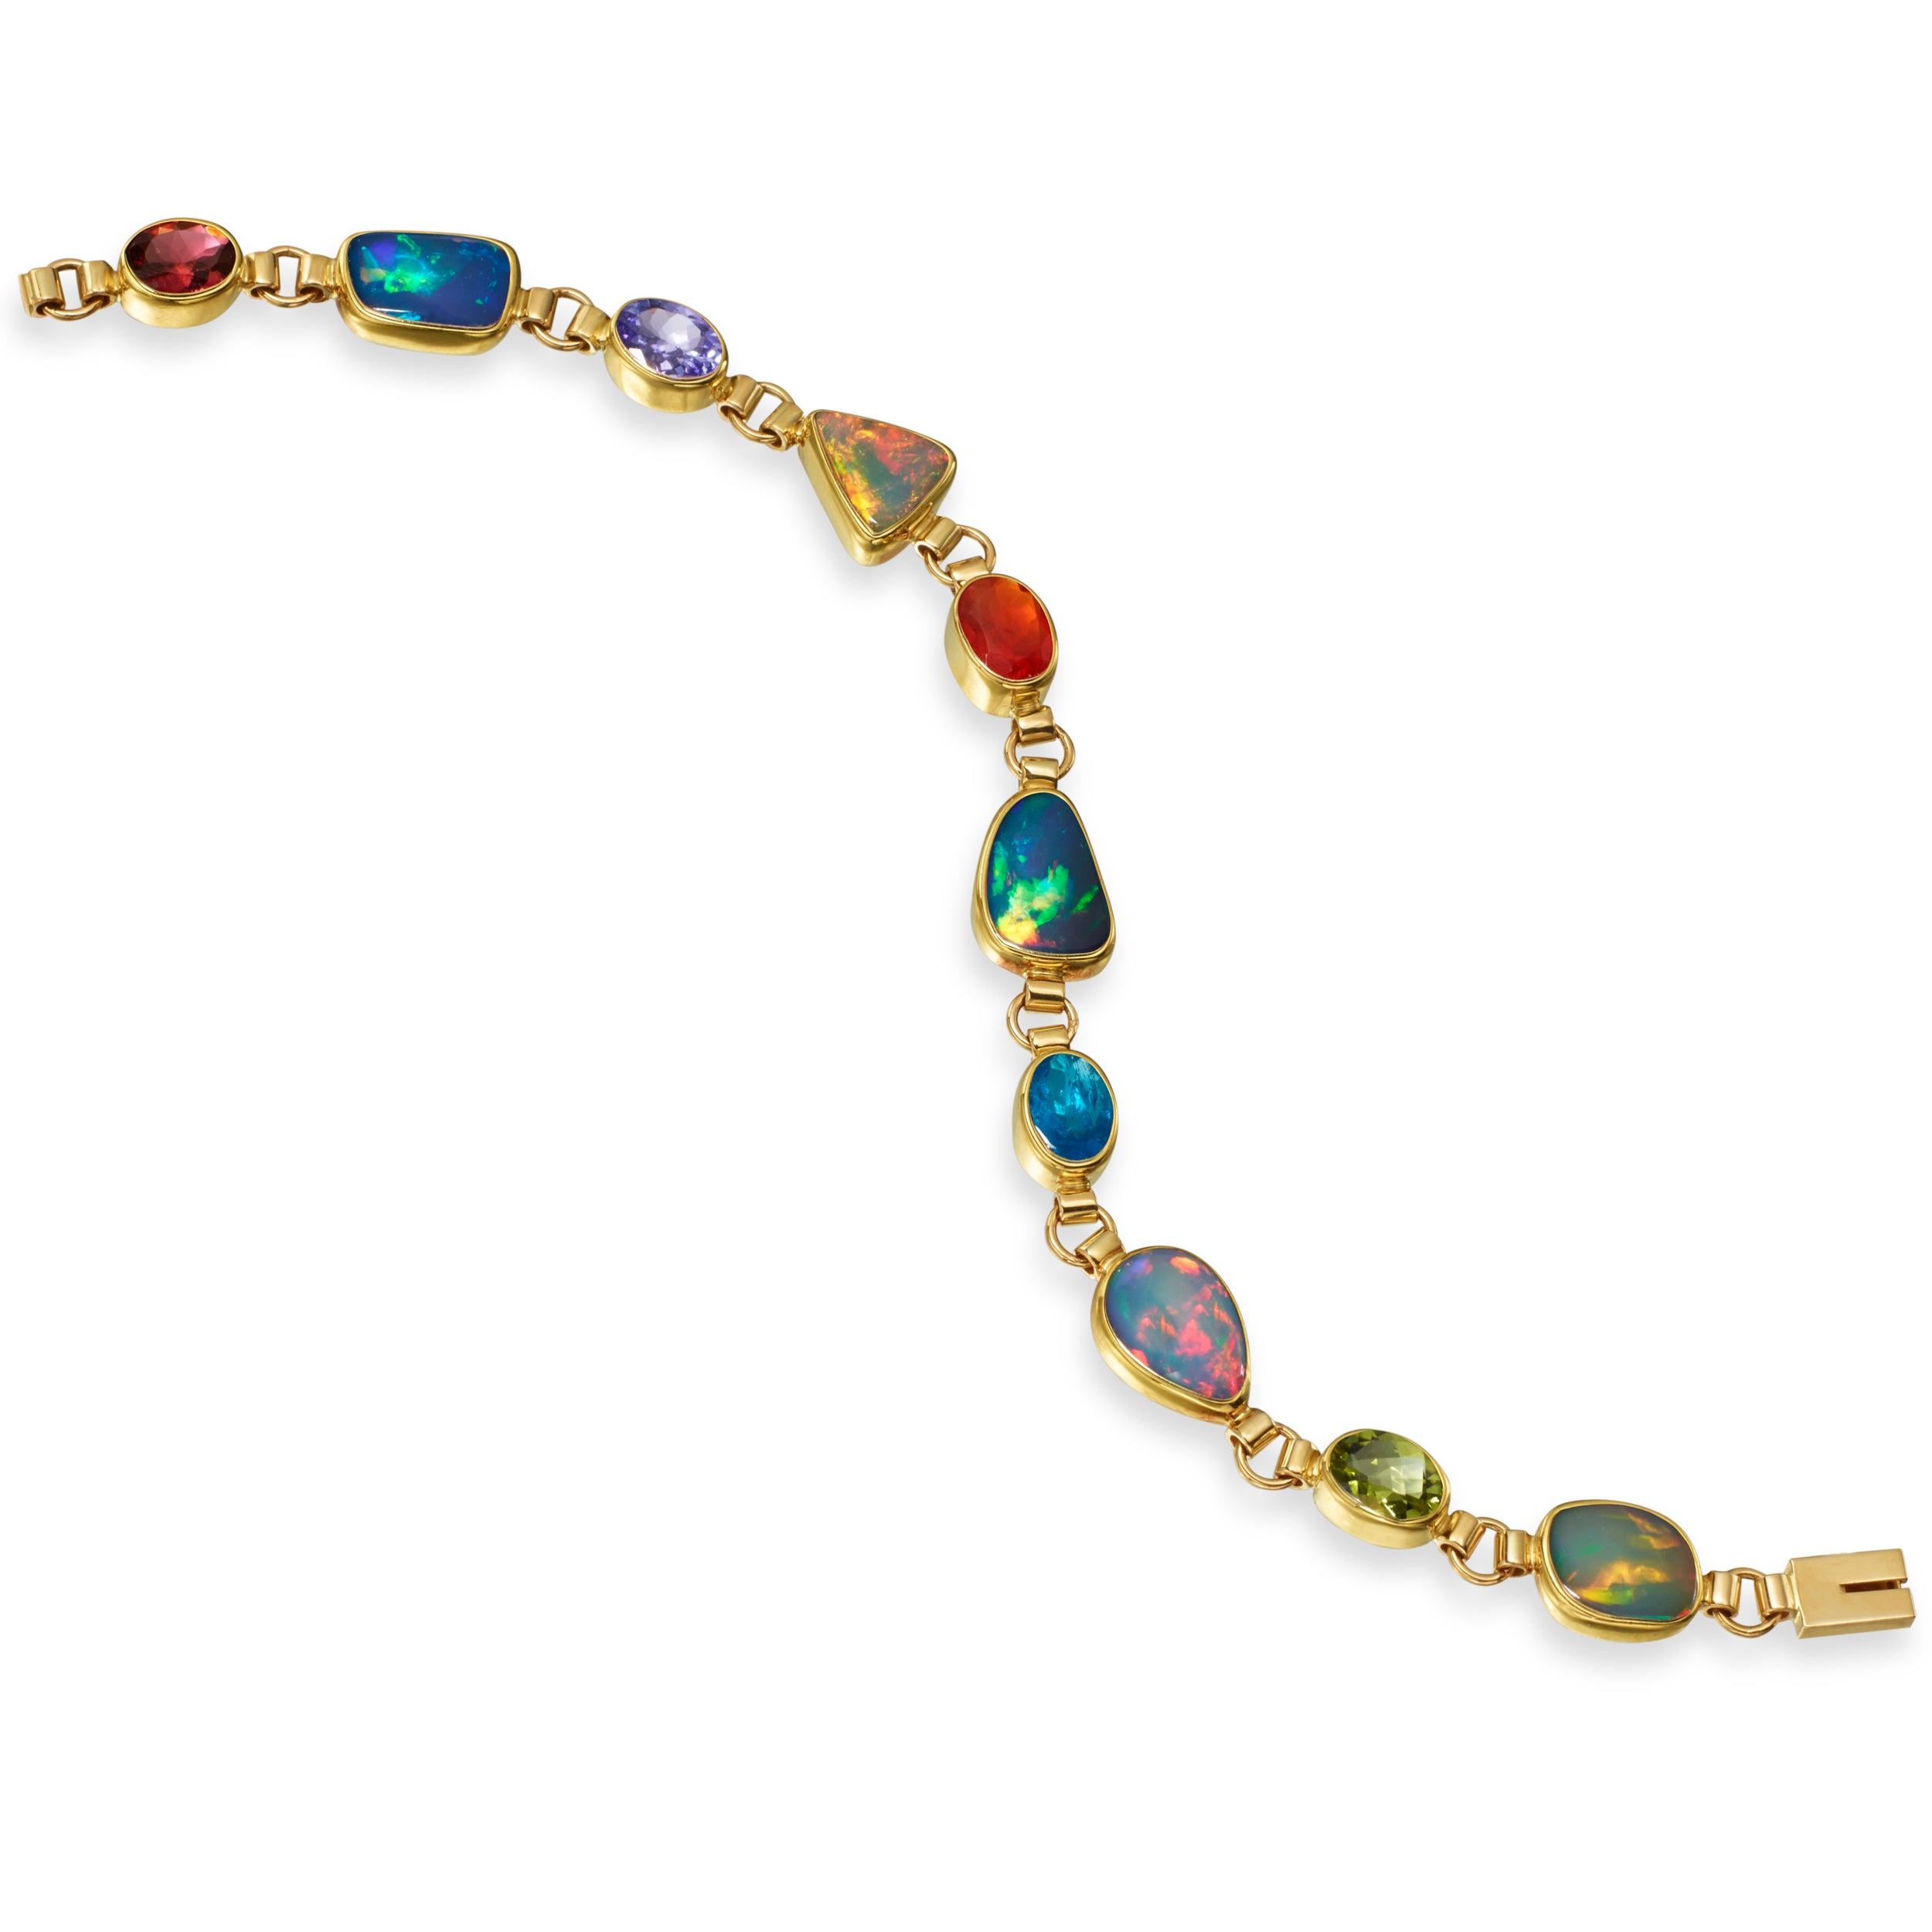 Ethiopian Freeform Opal, Blue Topaz, Tanzanite, Pink Tourmaline, Mexican Fire Opal, 14K Yellow Gold Bracelet